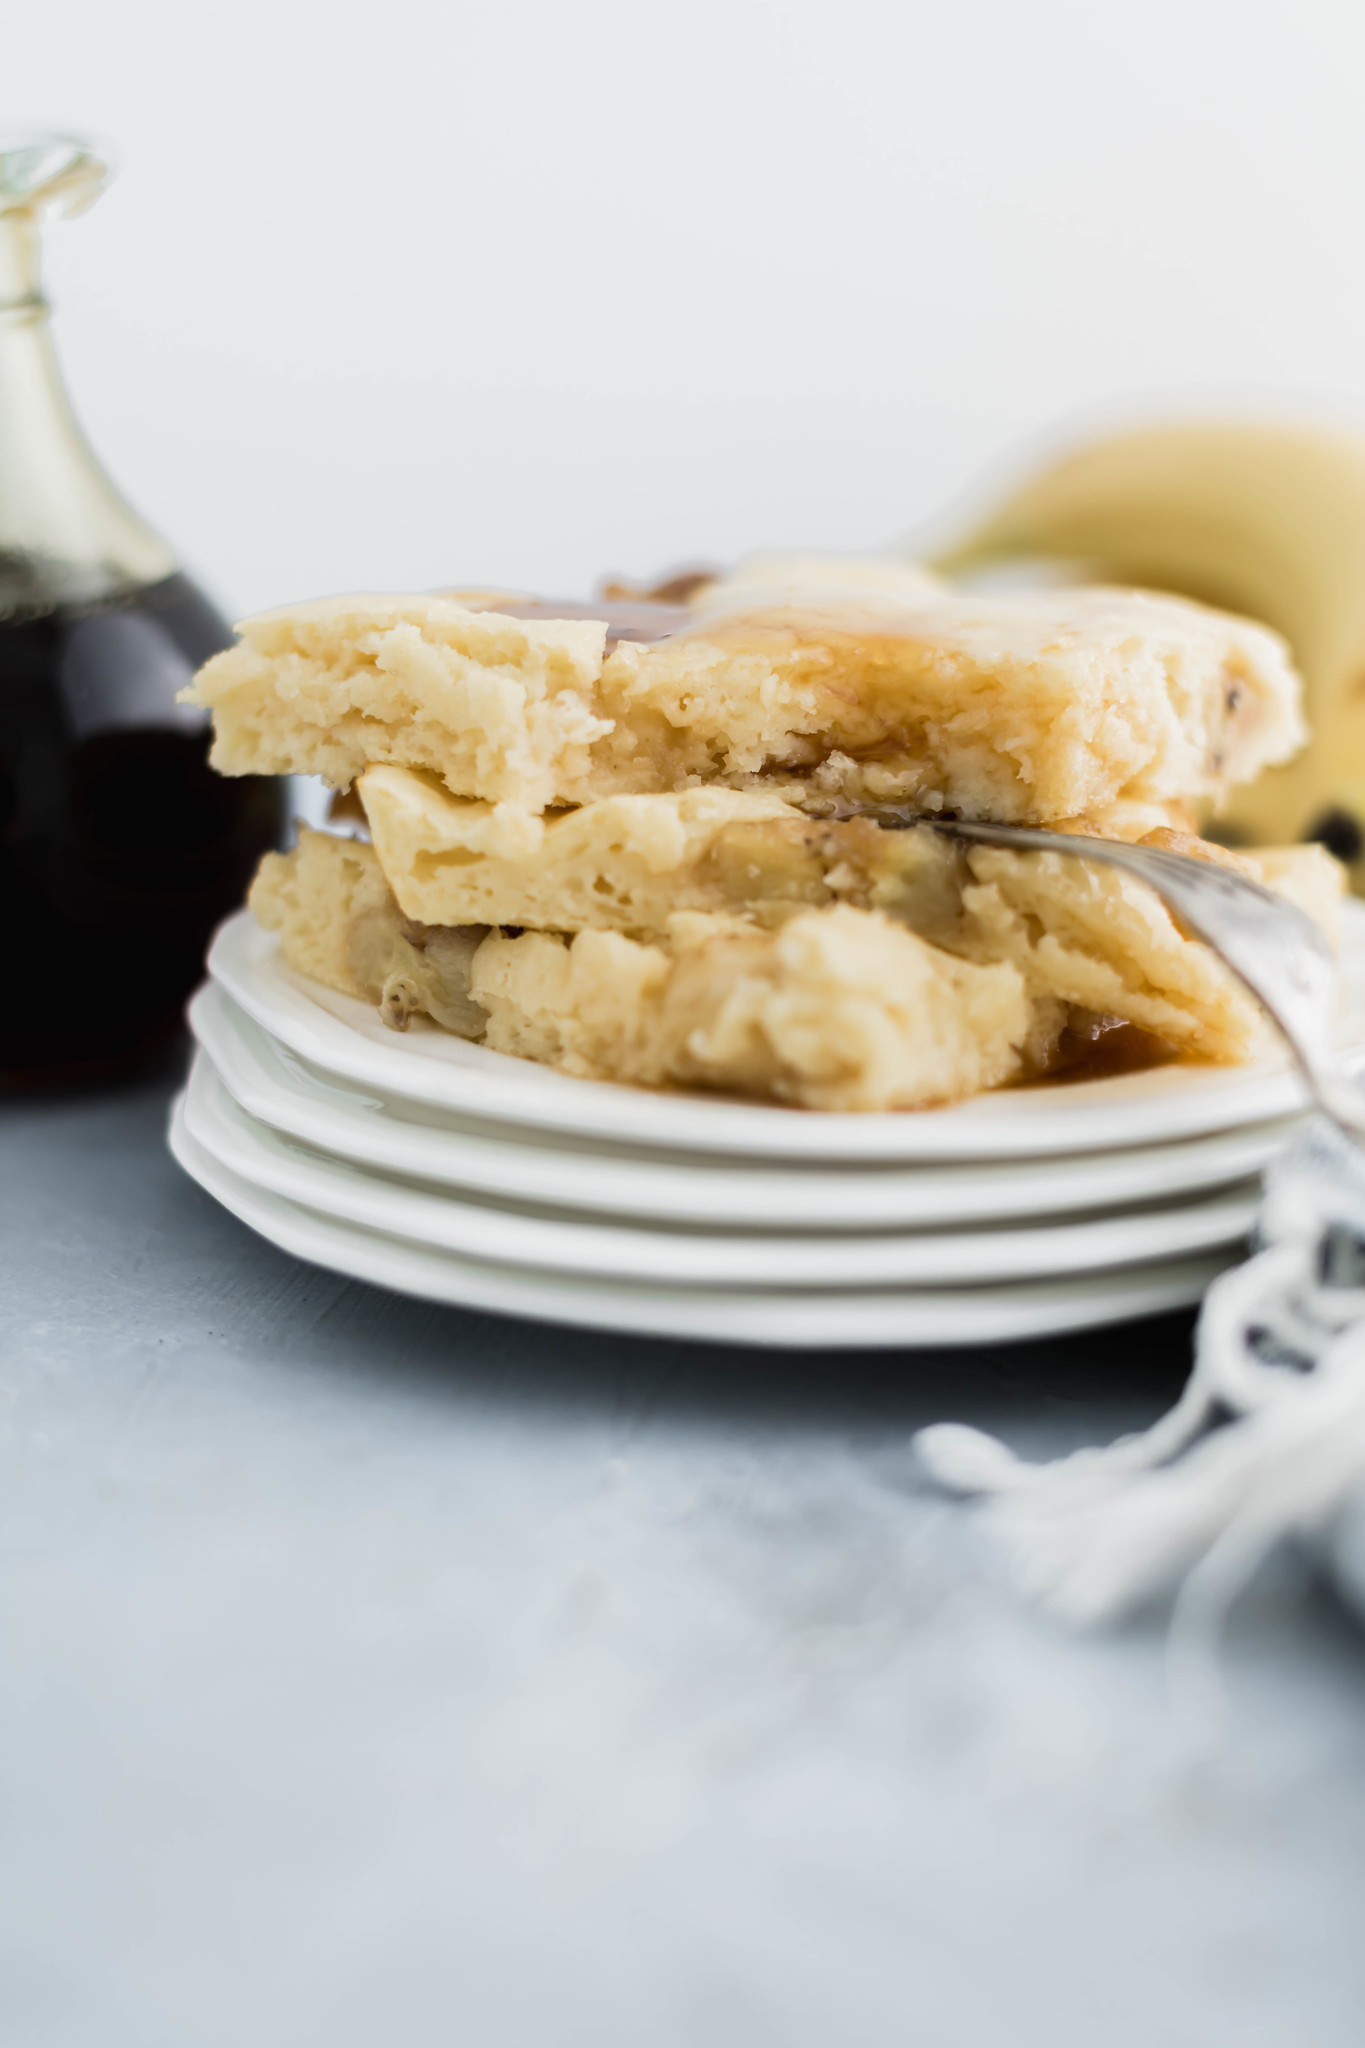 Get your pancakes made in a flash with this fun method. Sheet Pan Pancakes with Caramelized Bananas will quickly become a breakfast favorite. A perfect freezer friendly breakfast.